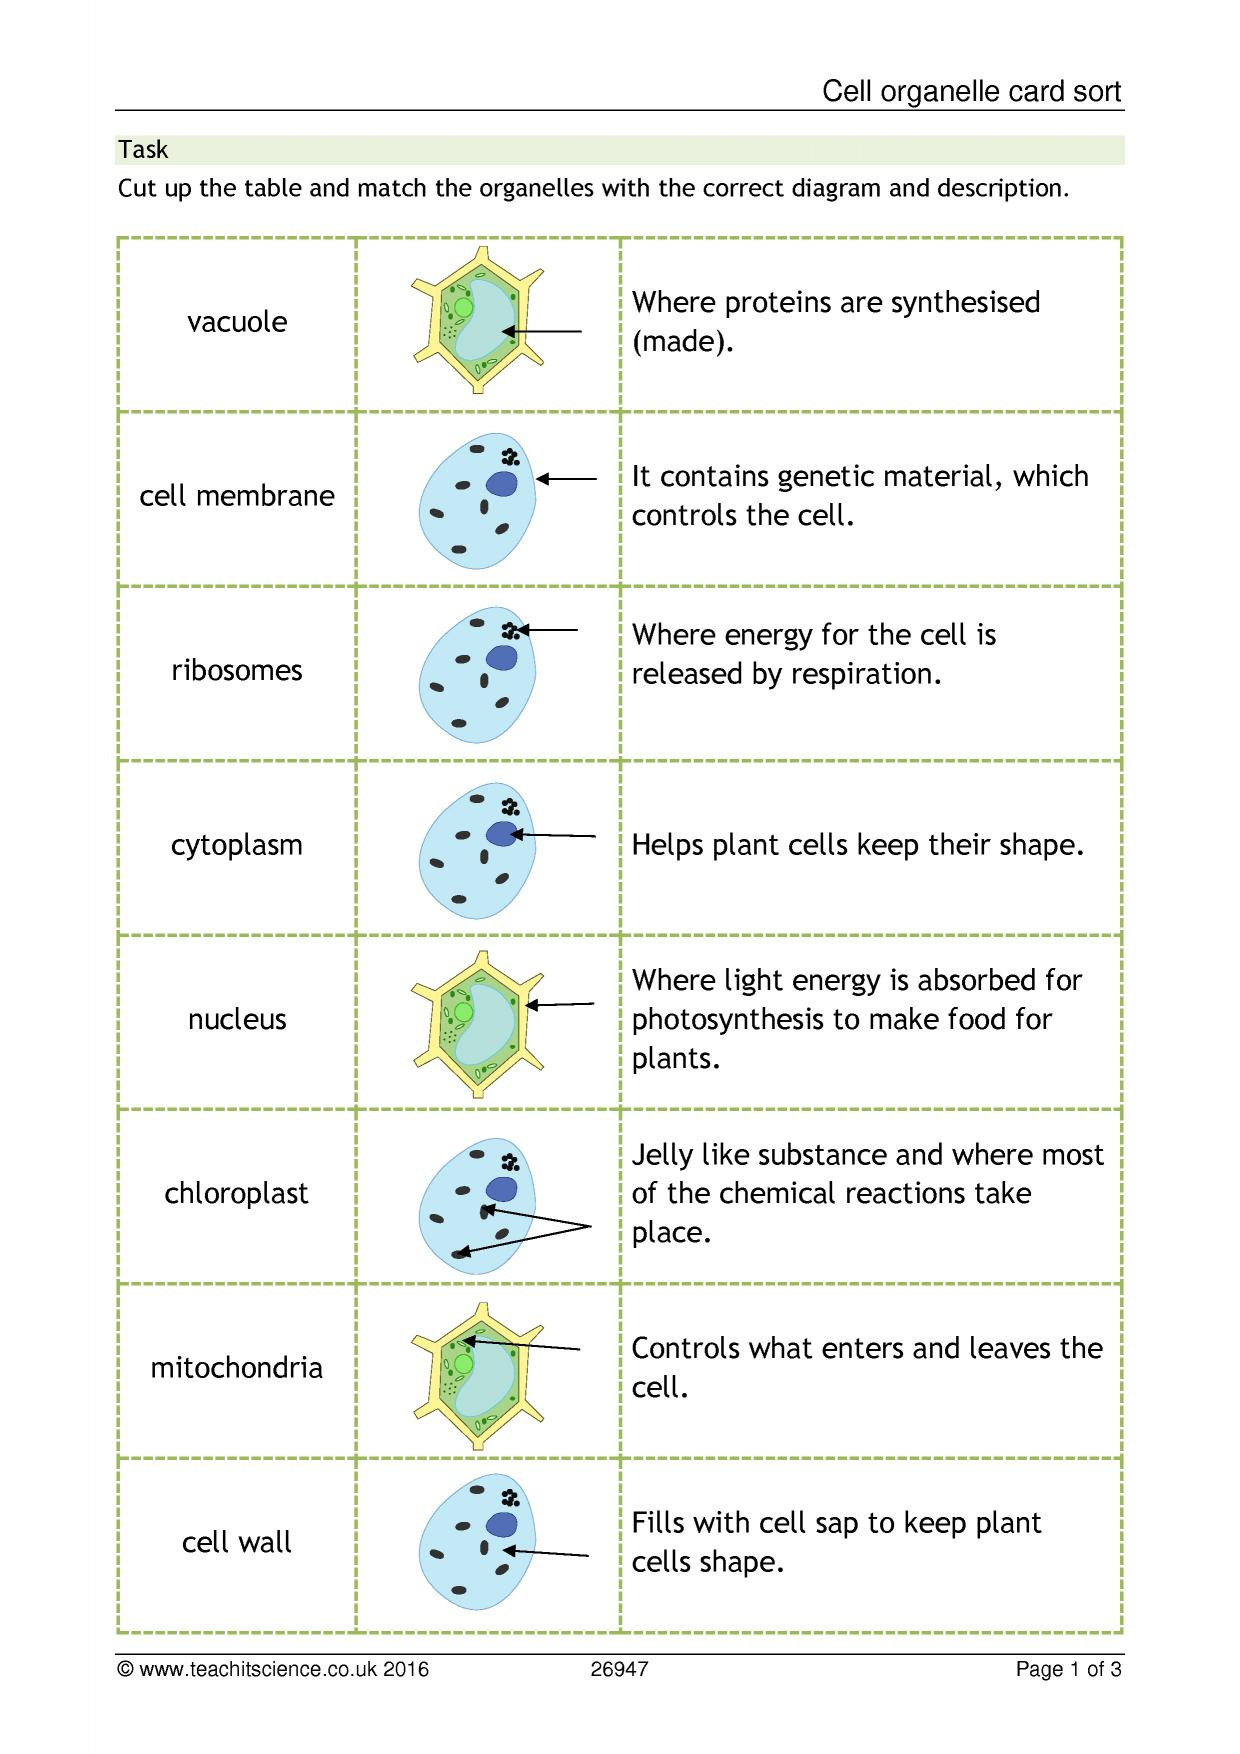 Cell organelles Worksheet Middle School Cellular organelle Function Matching Worksheet